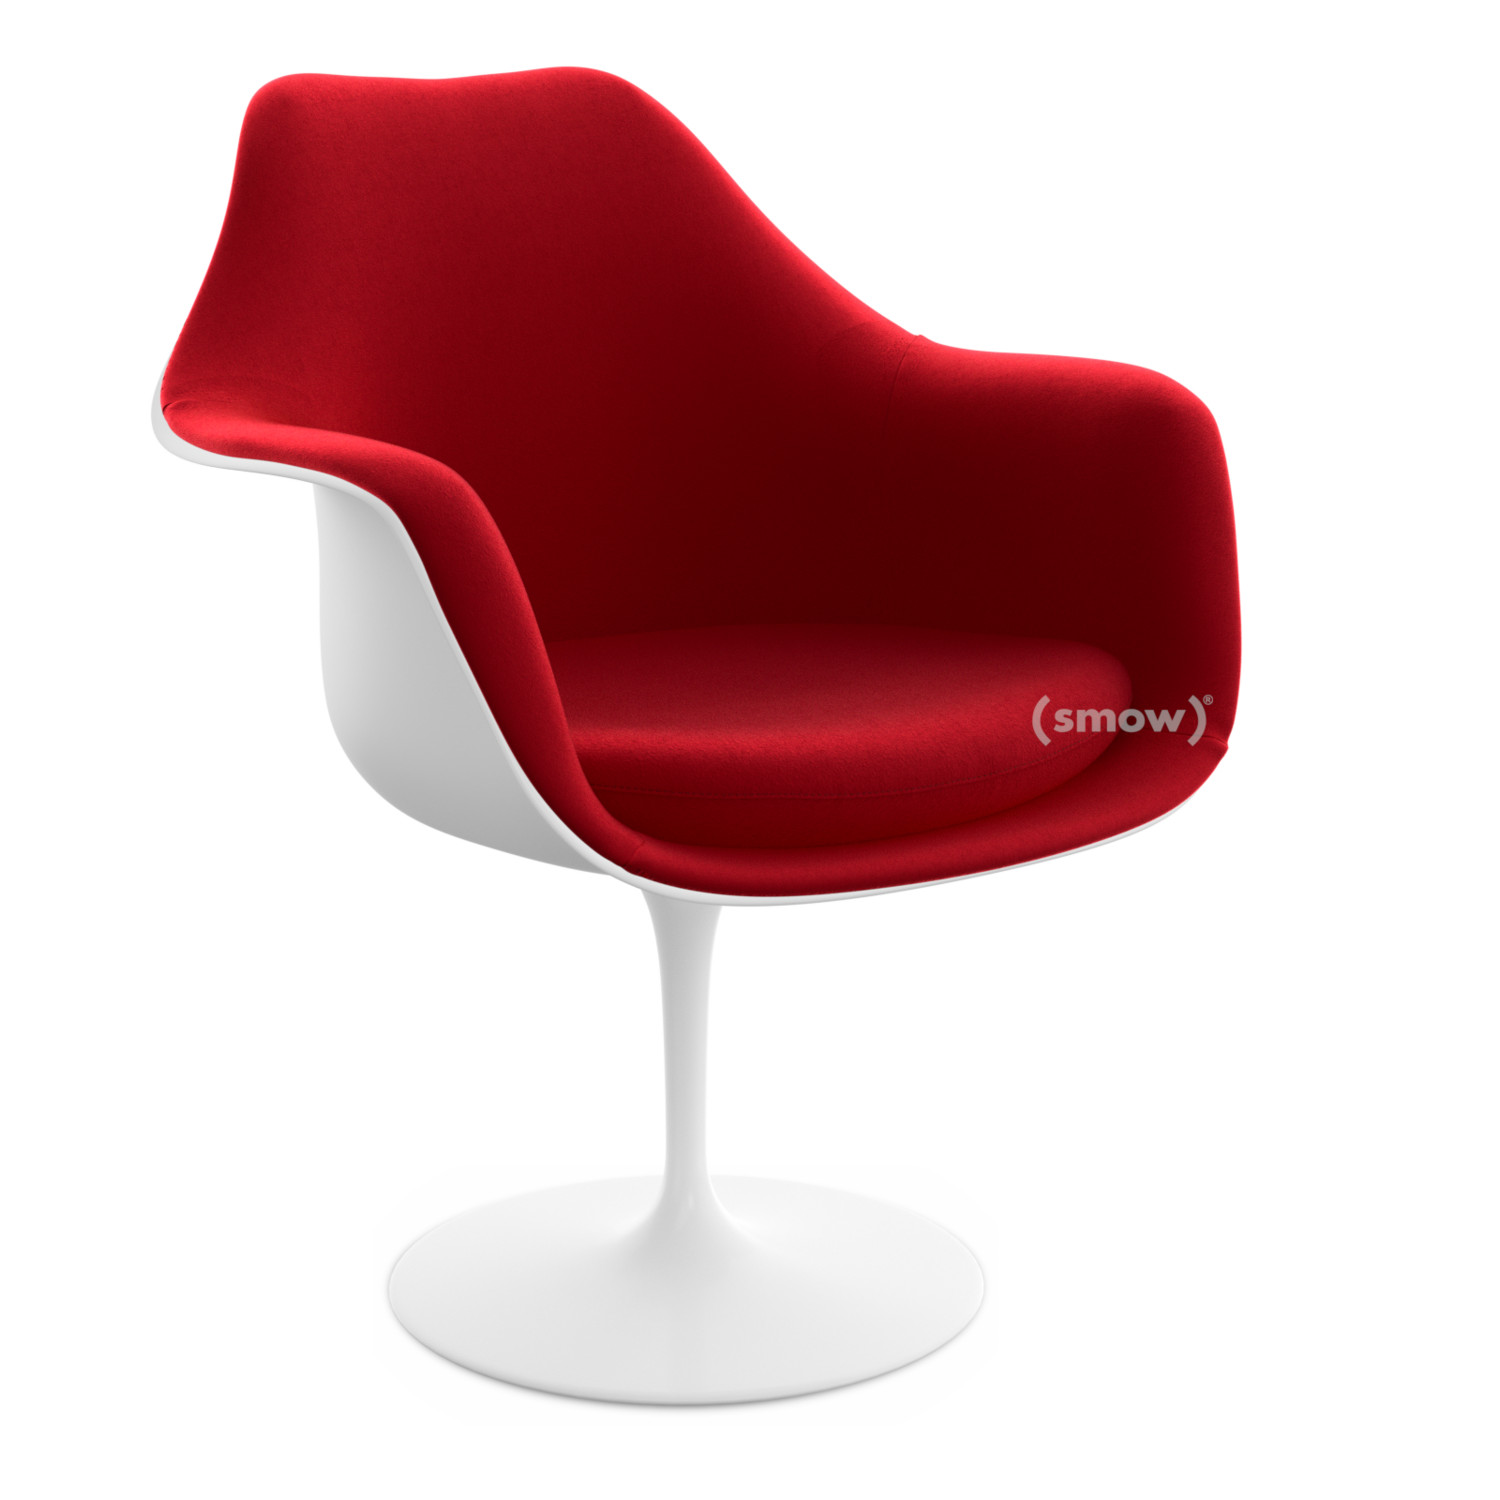 Knoll International Saarinen Tulip Armchair Swivel Upholstered Inner Shell And Seat Cushion White Bright Red Tonus 130 By Eero Saarinen 1955 1957 Designer Furniture By Smow Com